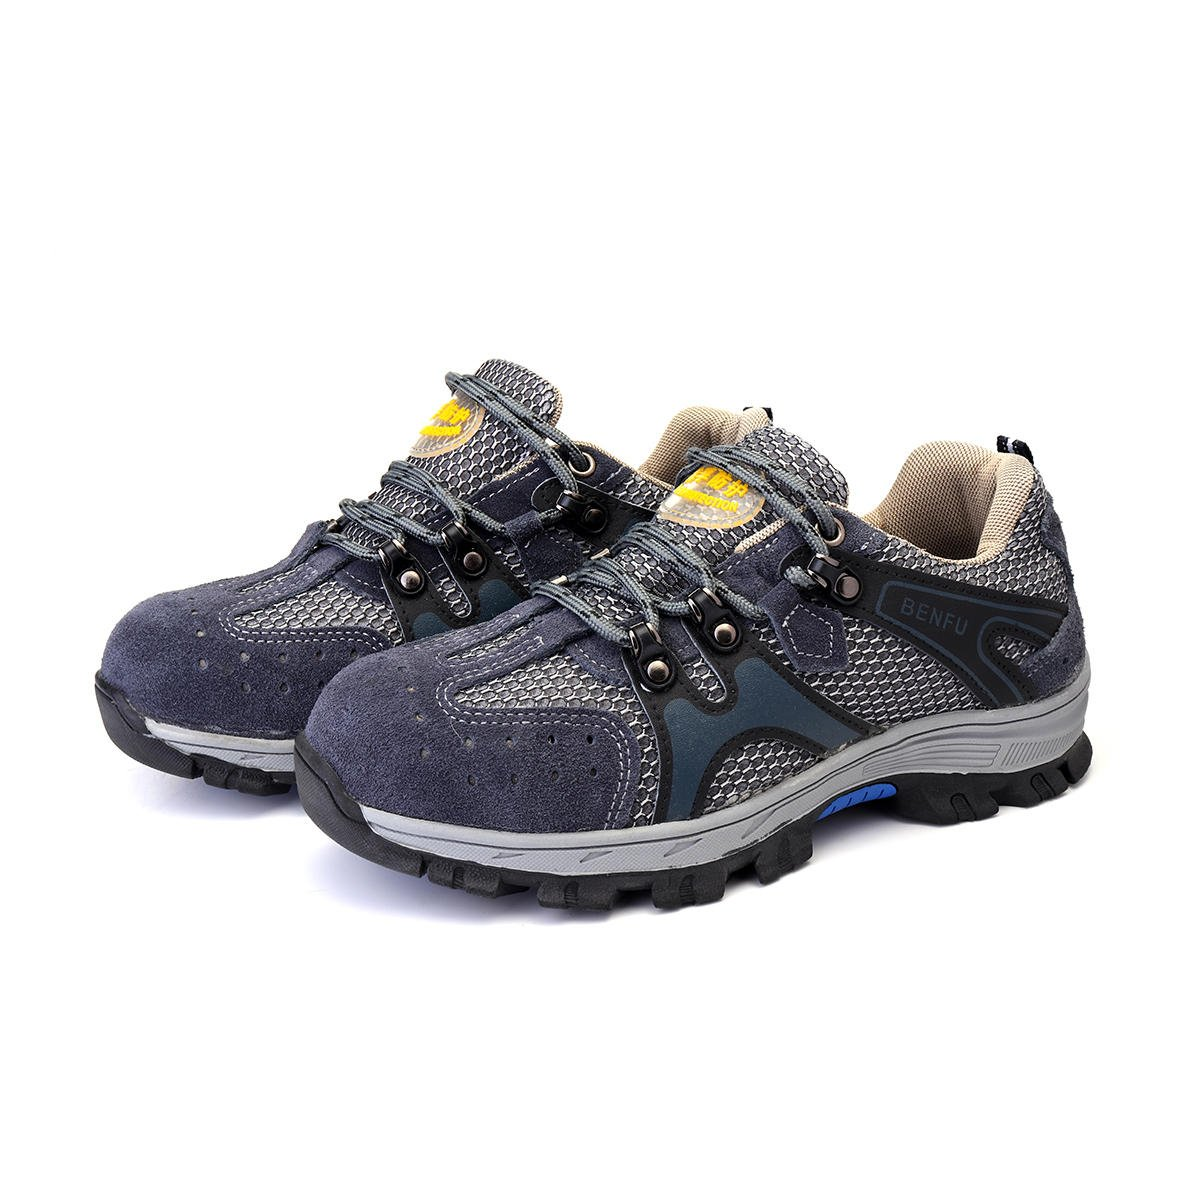 Men's Safety Shoes Steel Toe Work Sneakers Slip Resistant Breathable Hiking Climbing Shoes - 7.5 by Anddoa (Image #5)